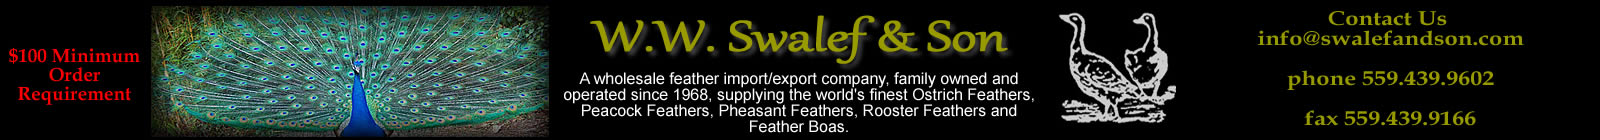 Wholesale Feathers from W.W. Swalef and Son